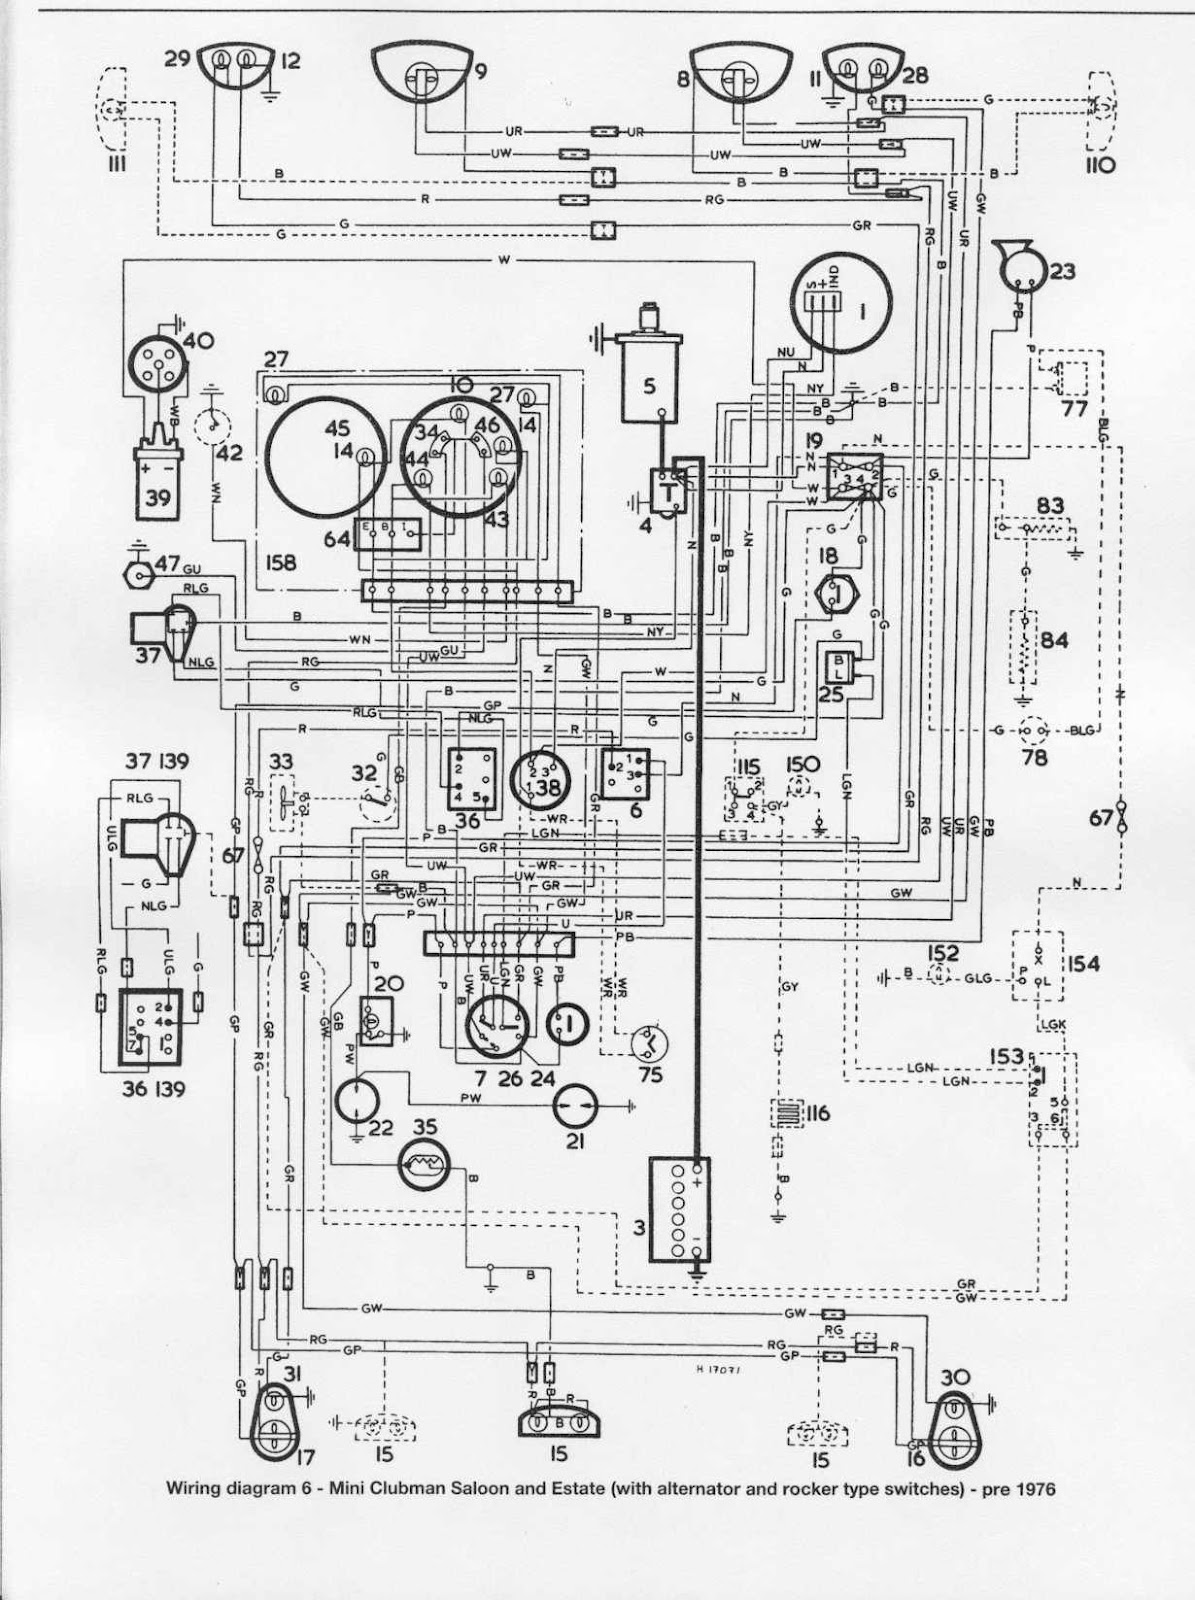 mini clubman saloon and estate 1976 electrical wiring diagram all about wiring diagrams